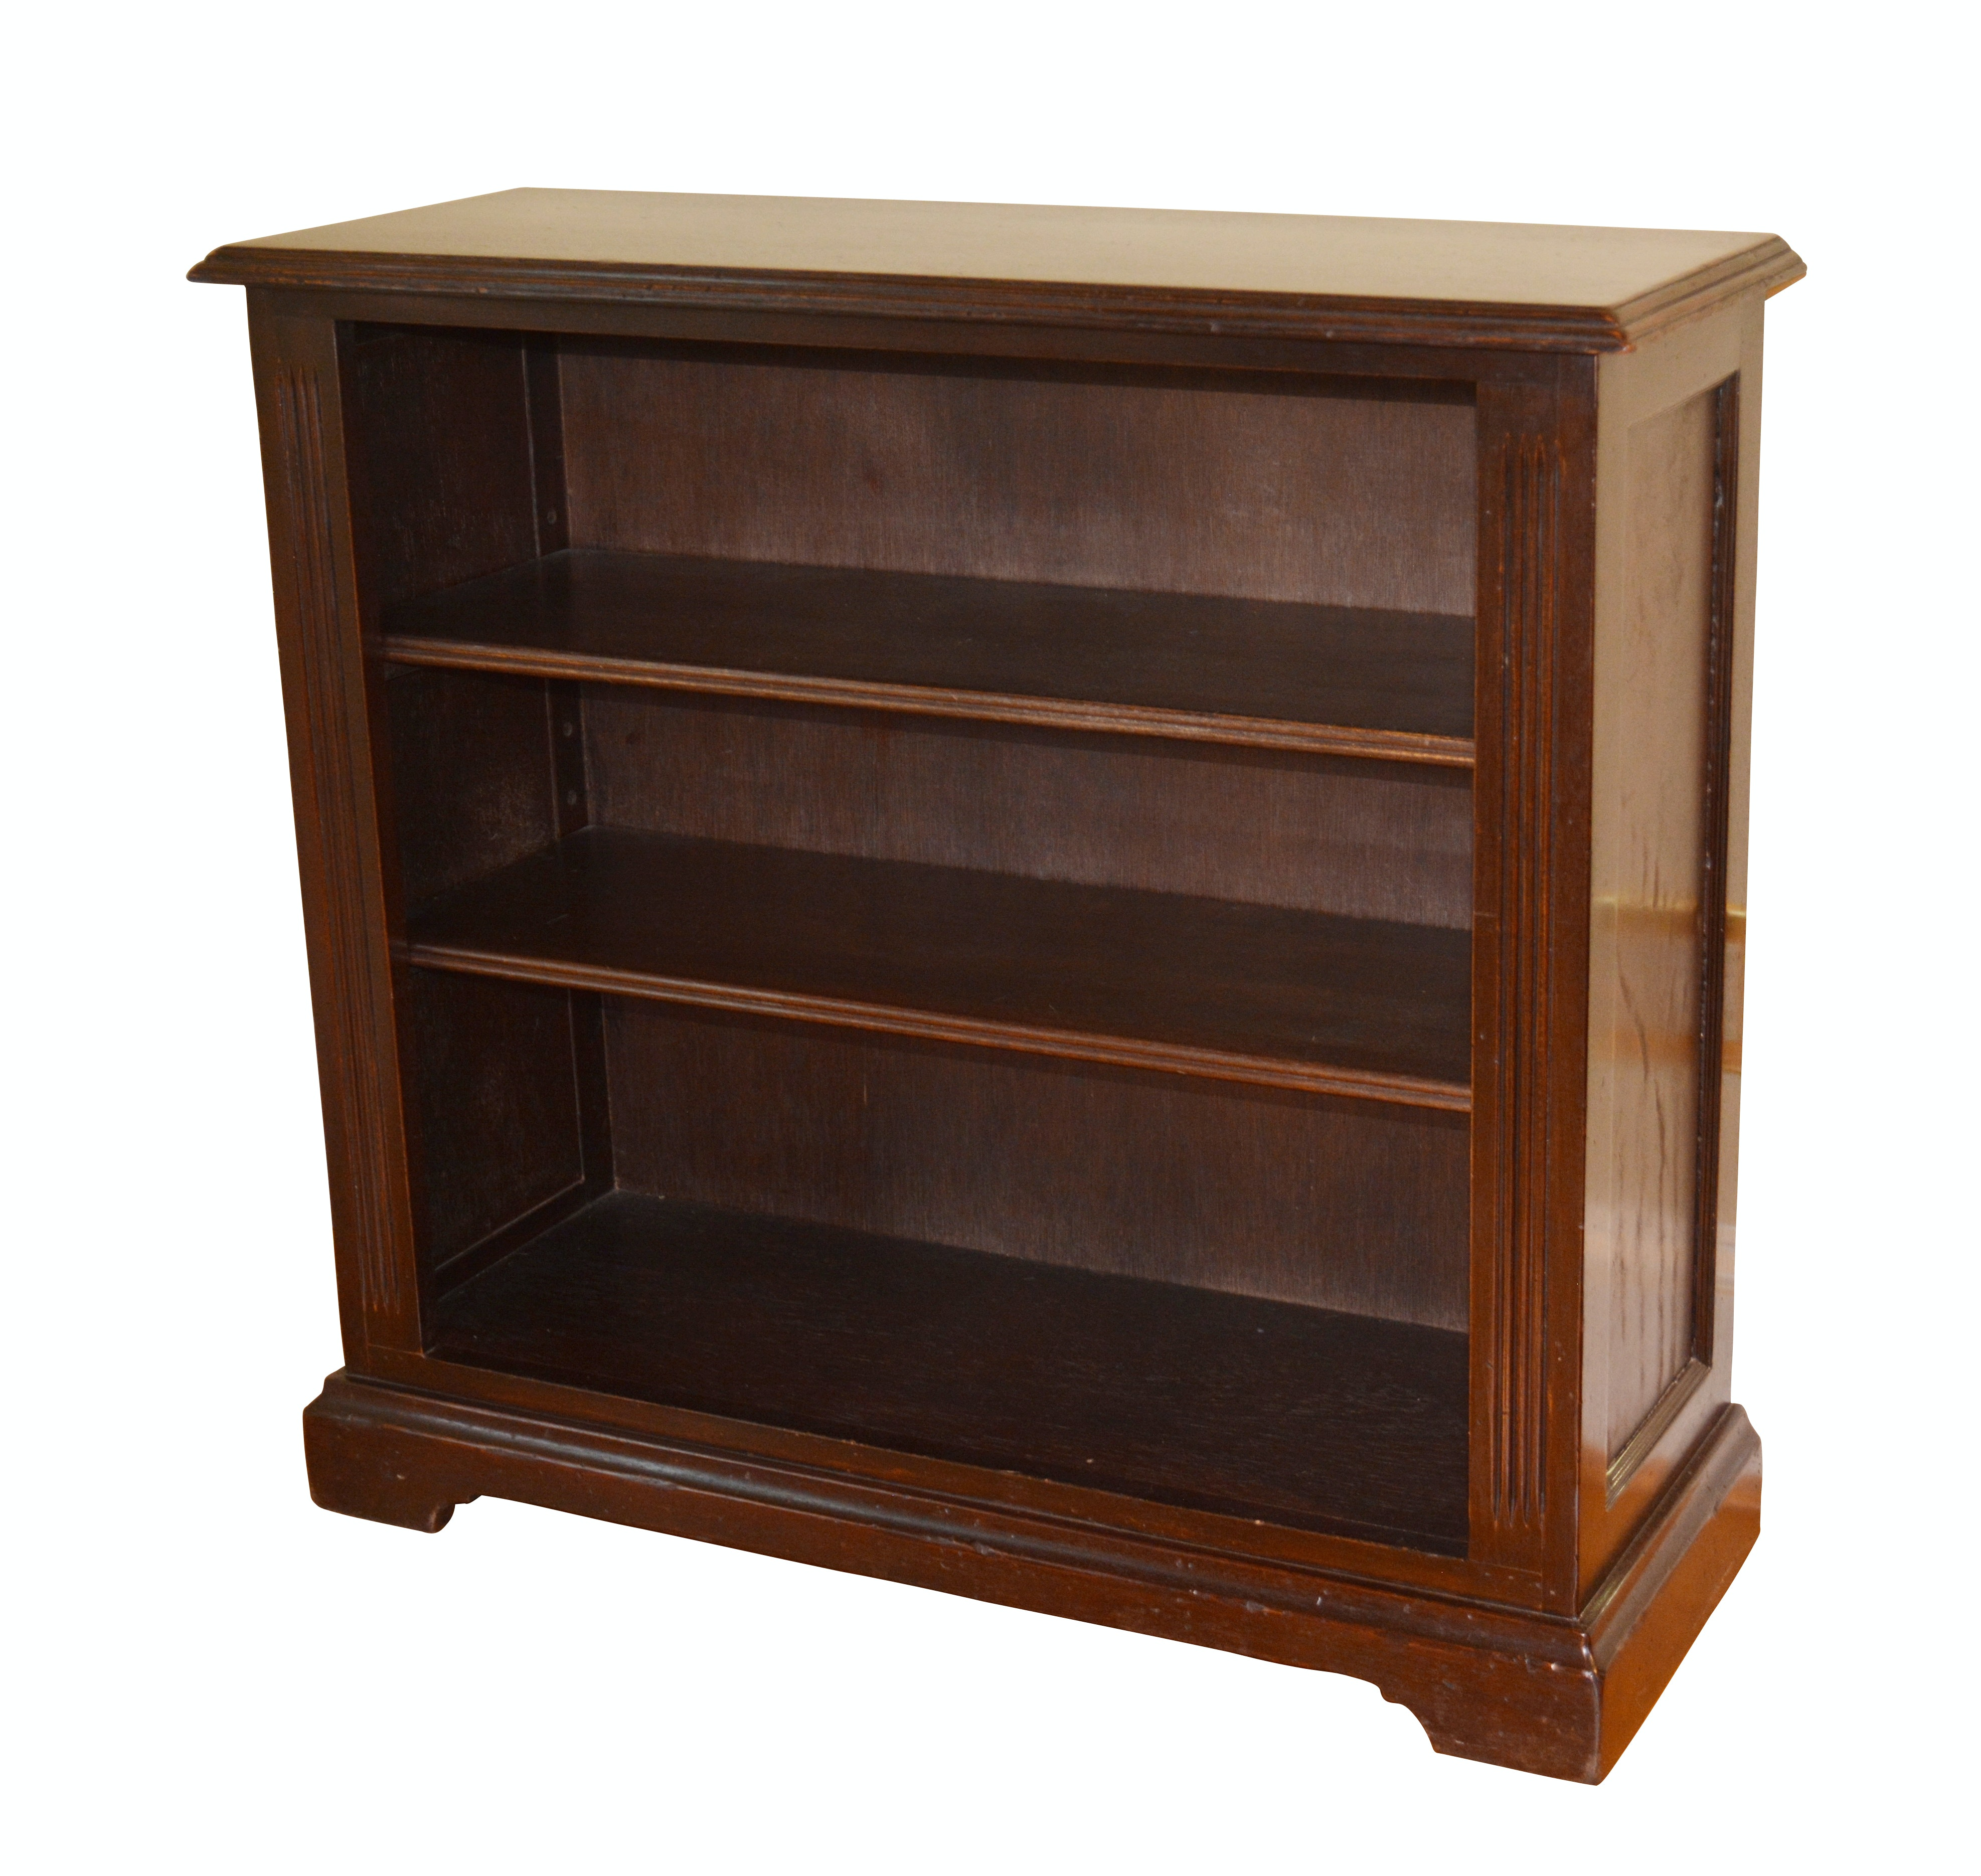 Contemporary Handmade Two-Shelf Bookcase by South Cone Trading Company